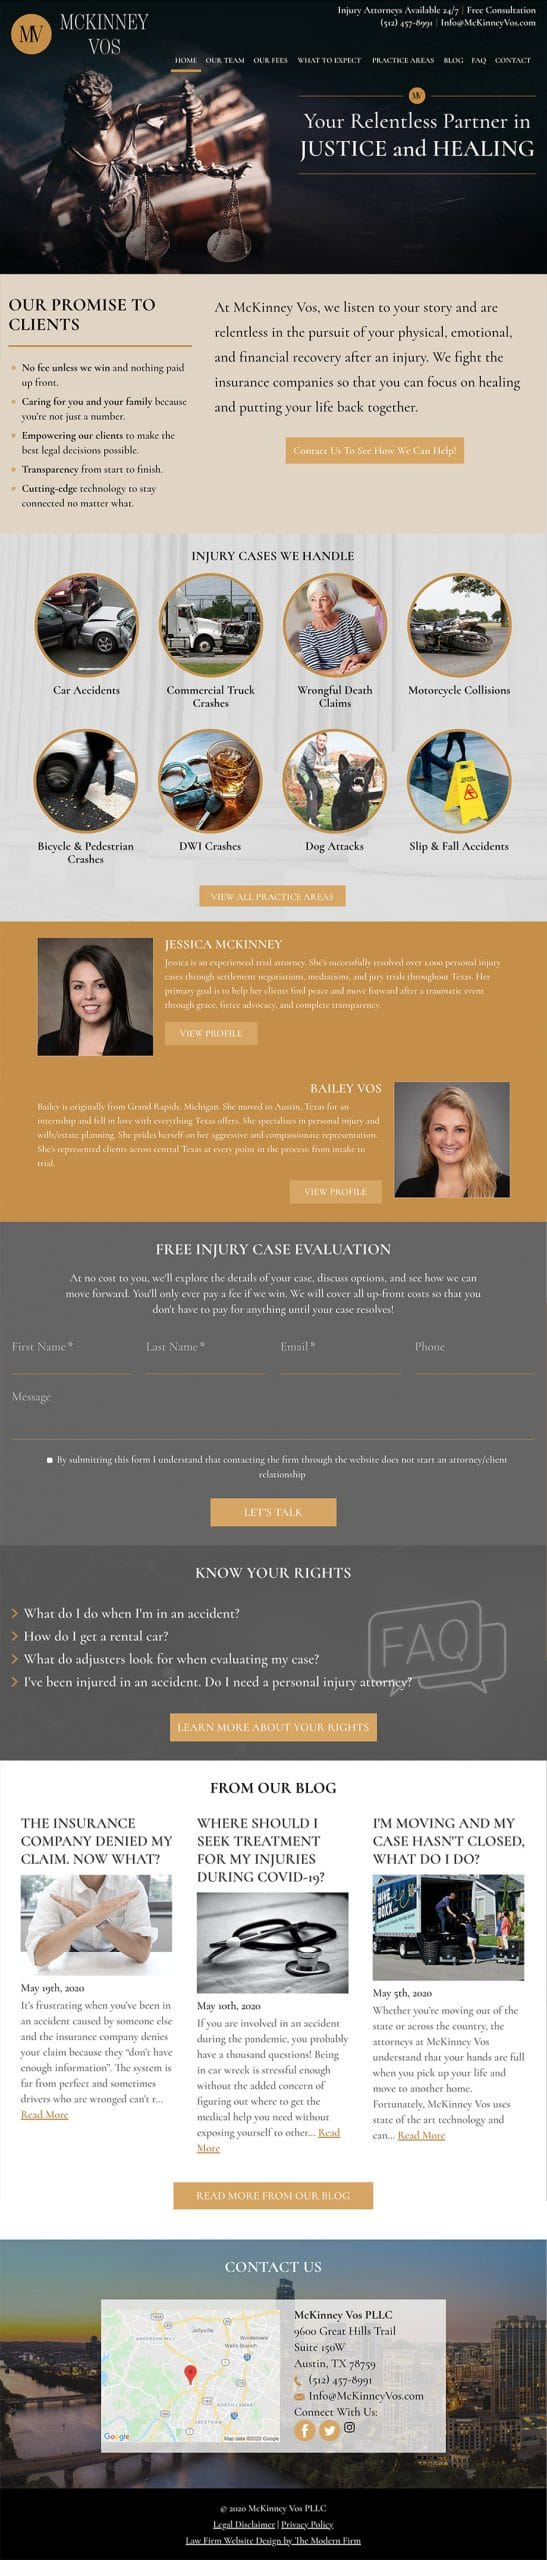 Law Firm Website Design for McKinney Vos PLLC